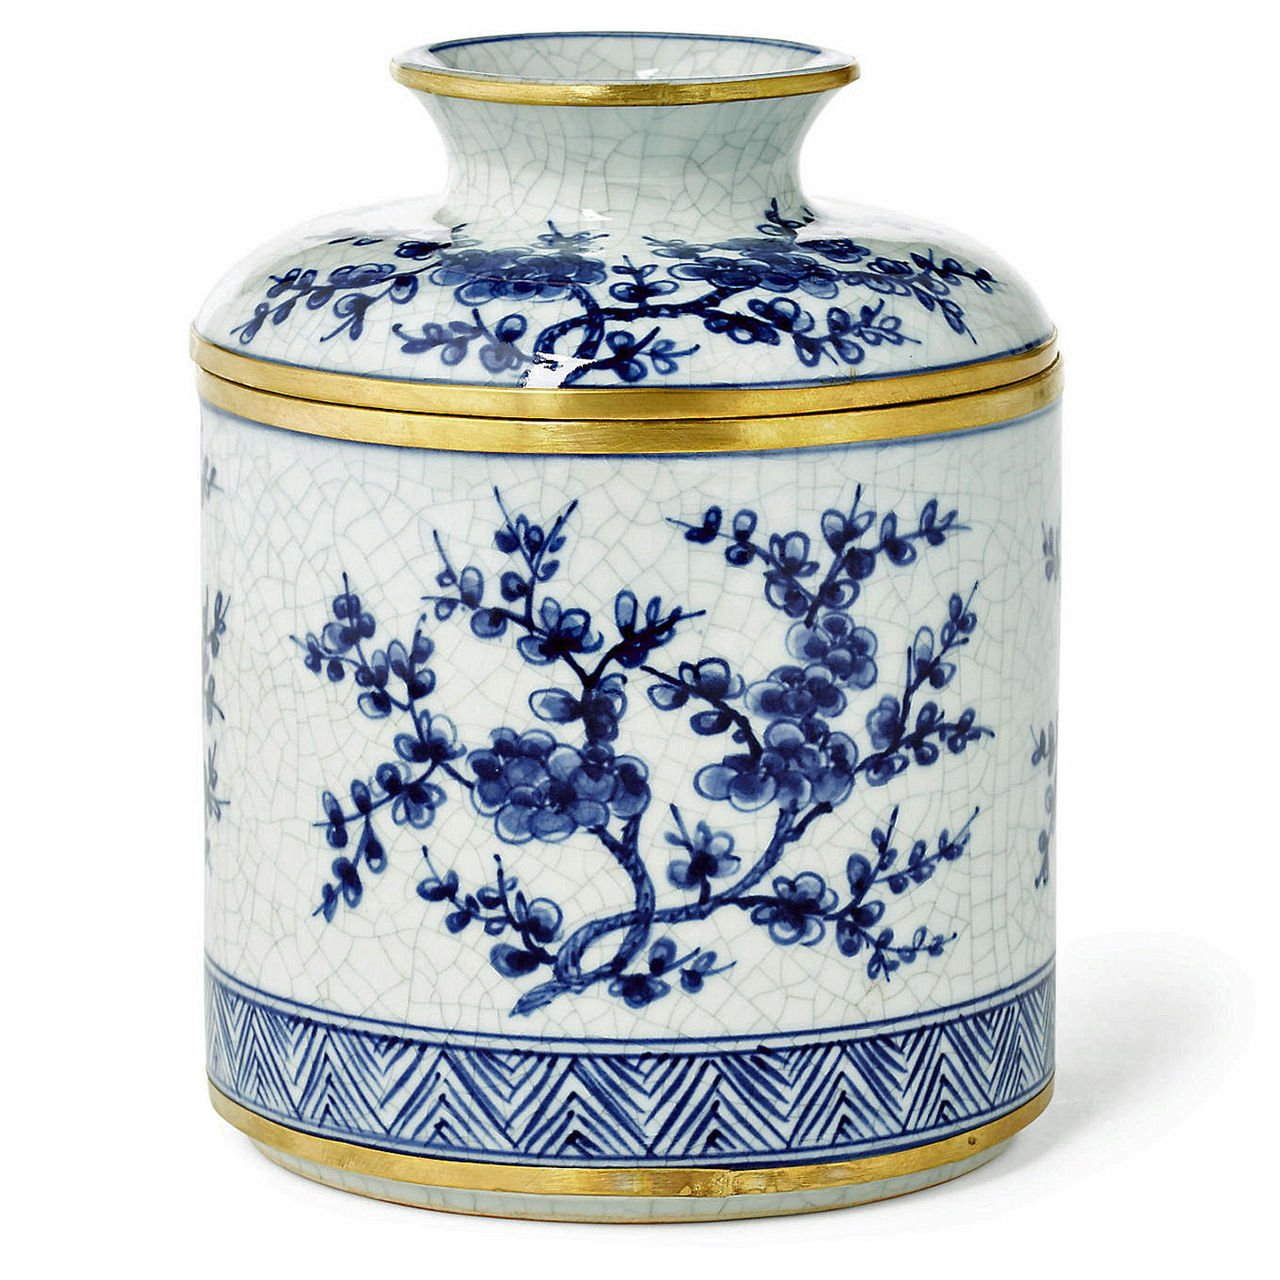 ''ENGLISH GARDEN'' BLUE & WHITE PORCELAIN DISPENSER - TISSUE COVER - TISSUE HOLDER by KensingtonRow Home Collection